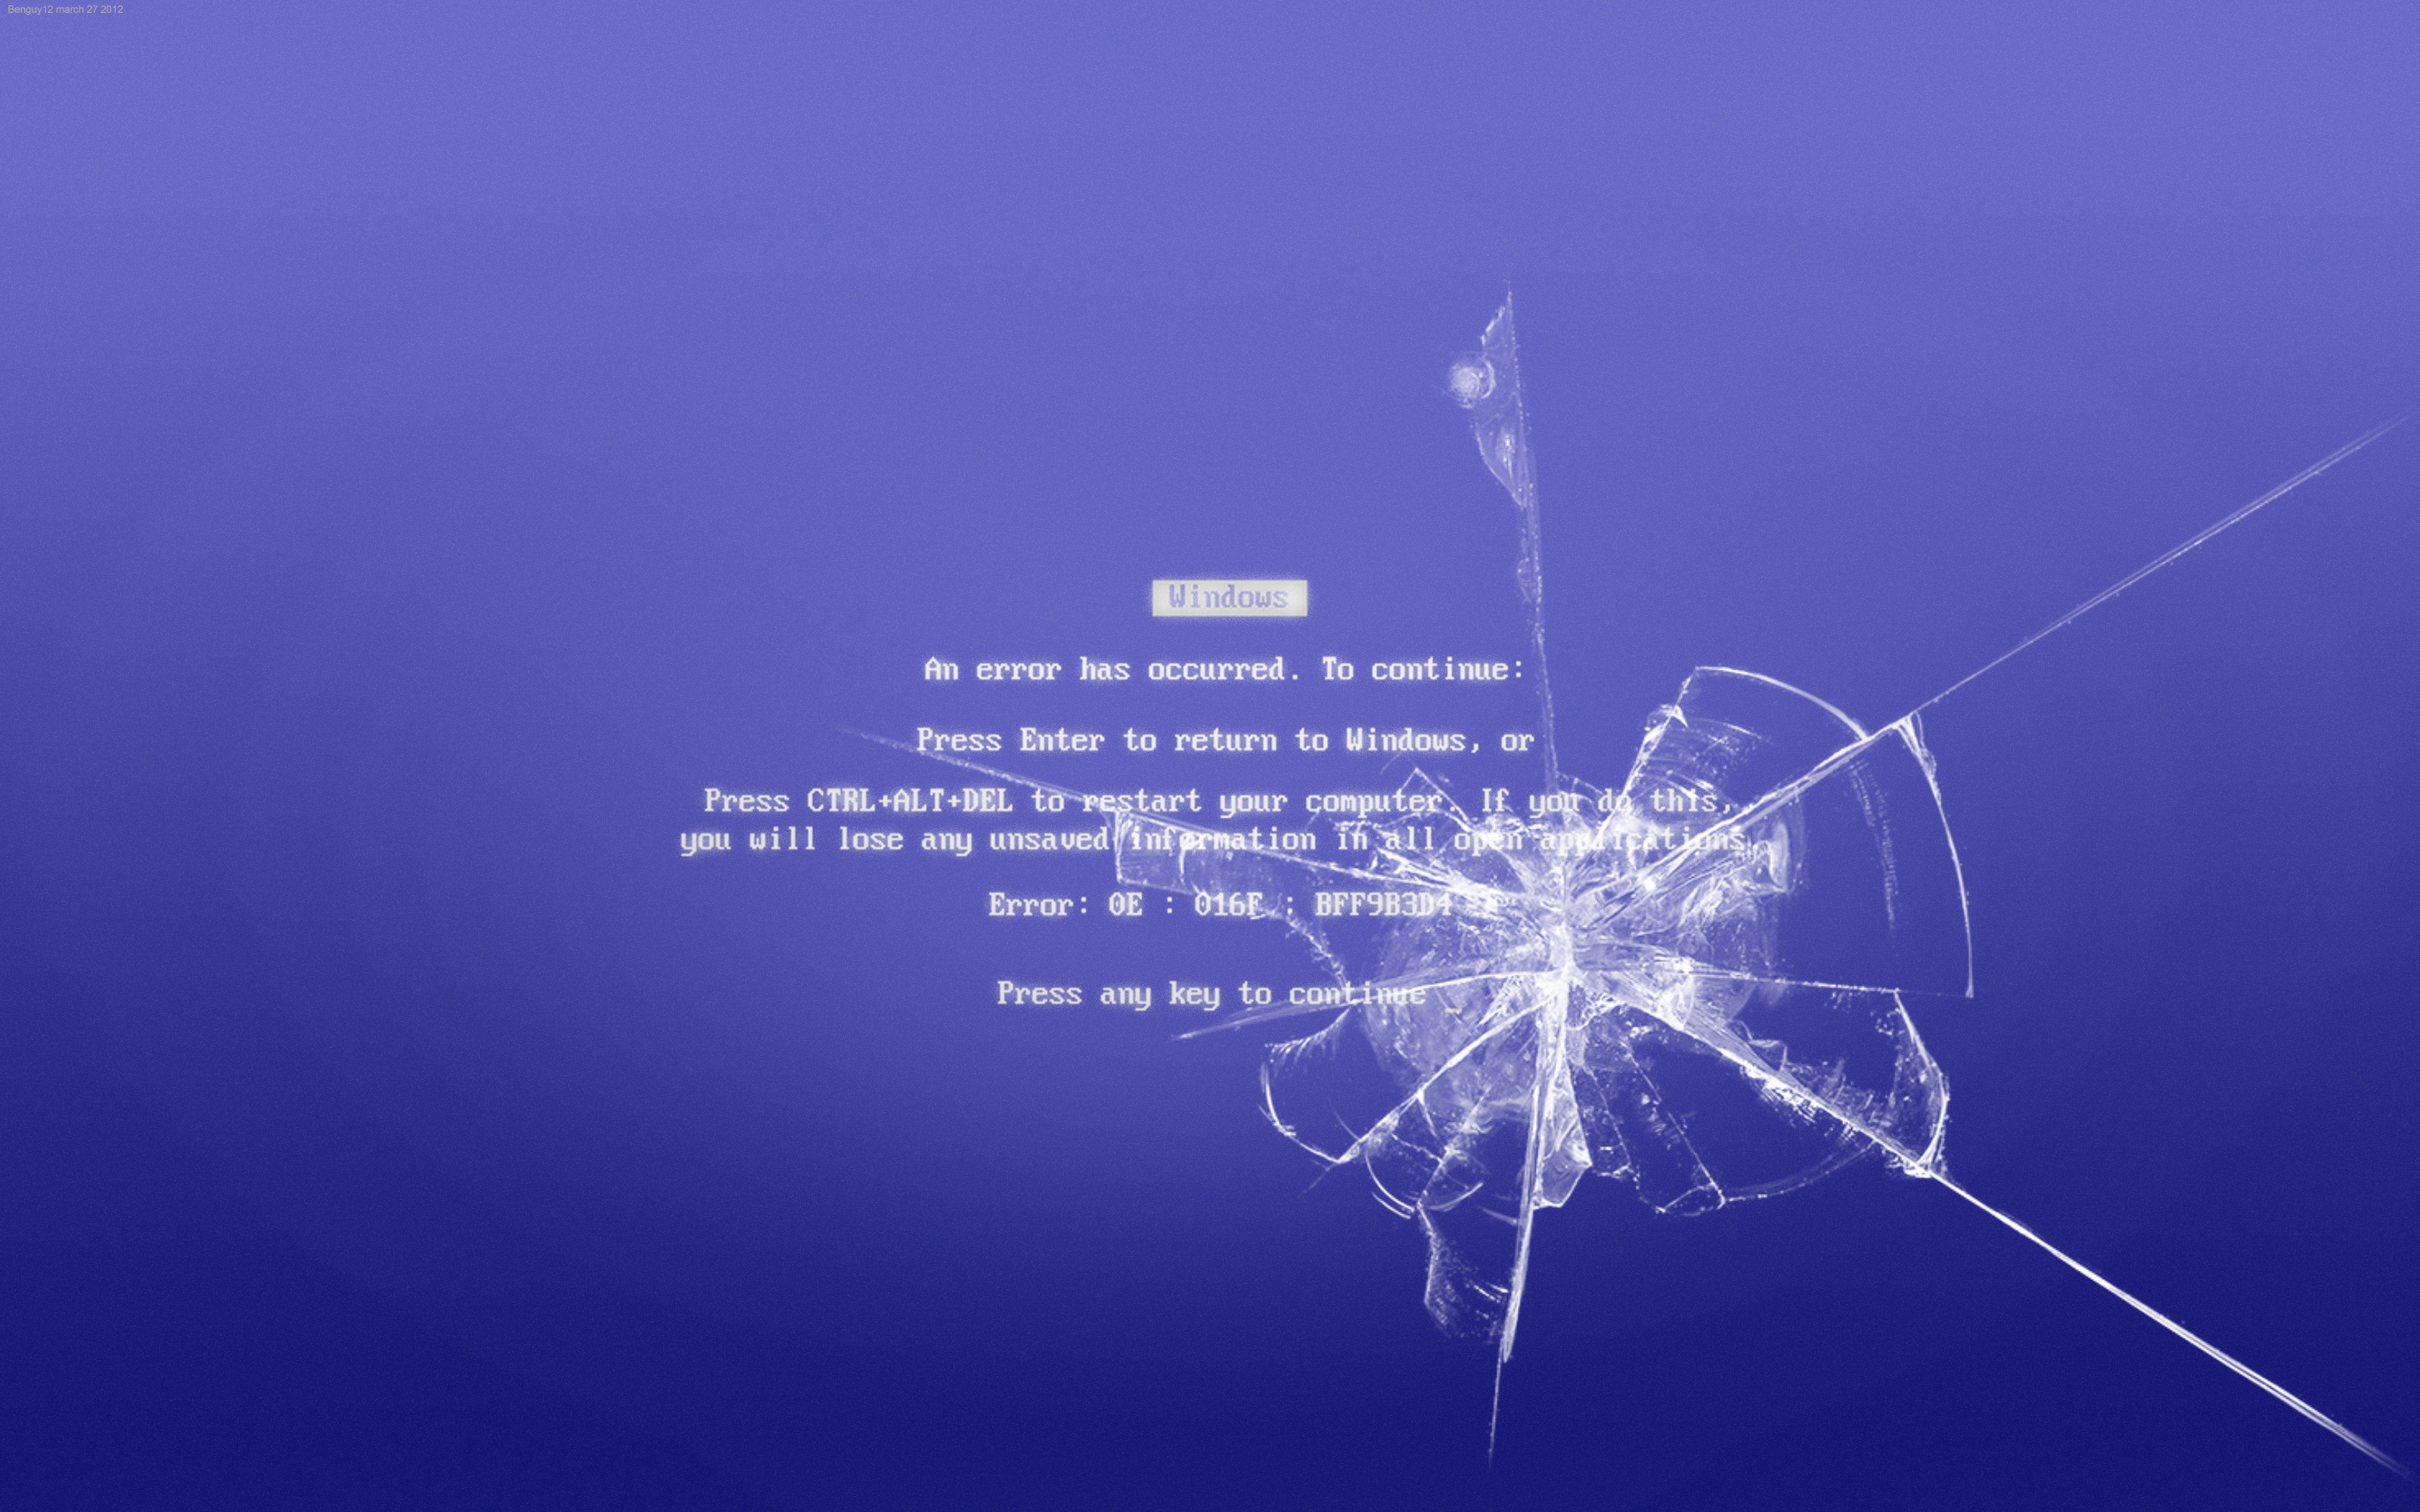 Download Smashed Bsod Wallpaper By Benguy12 3200x2000 76